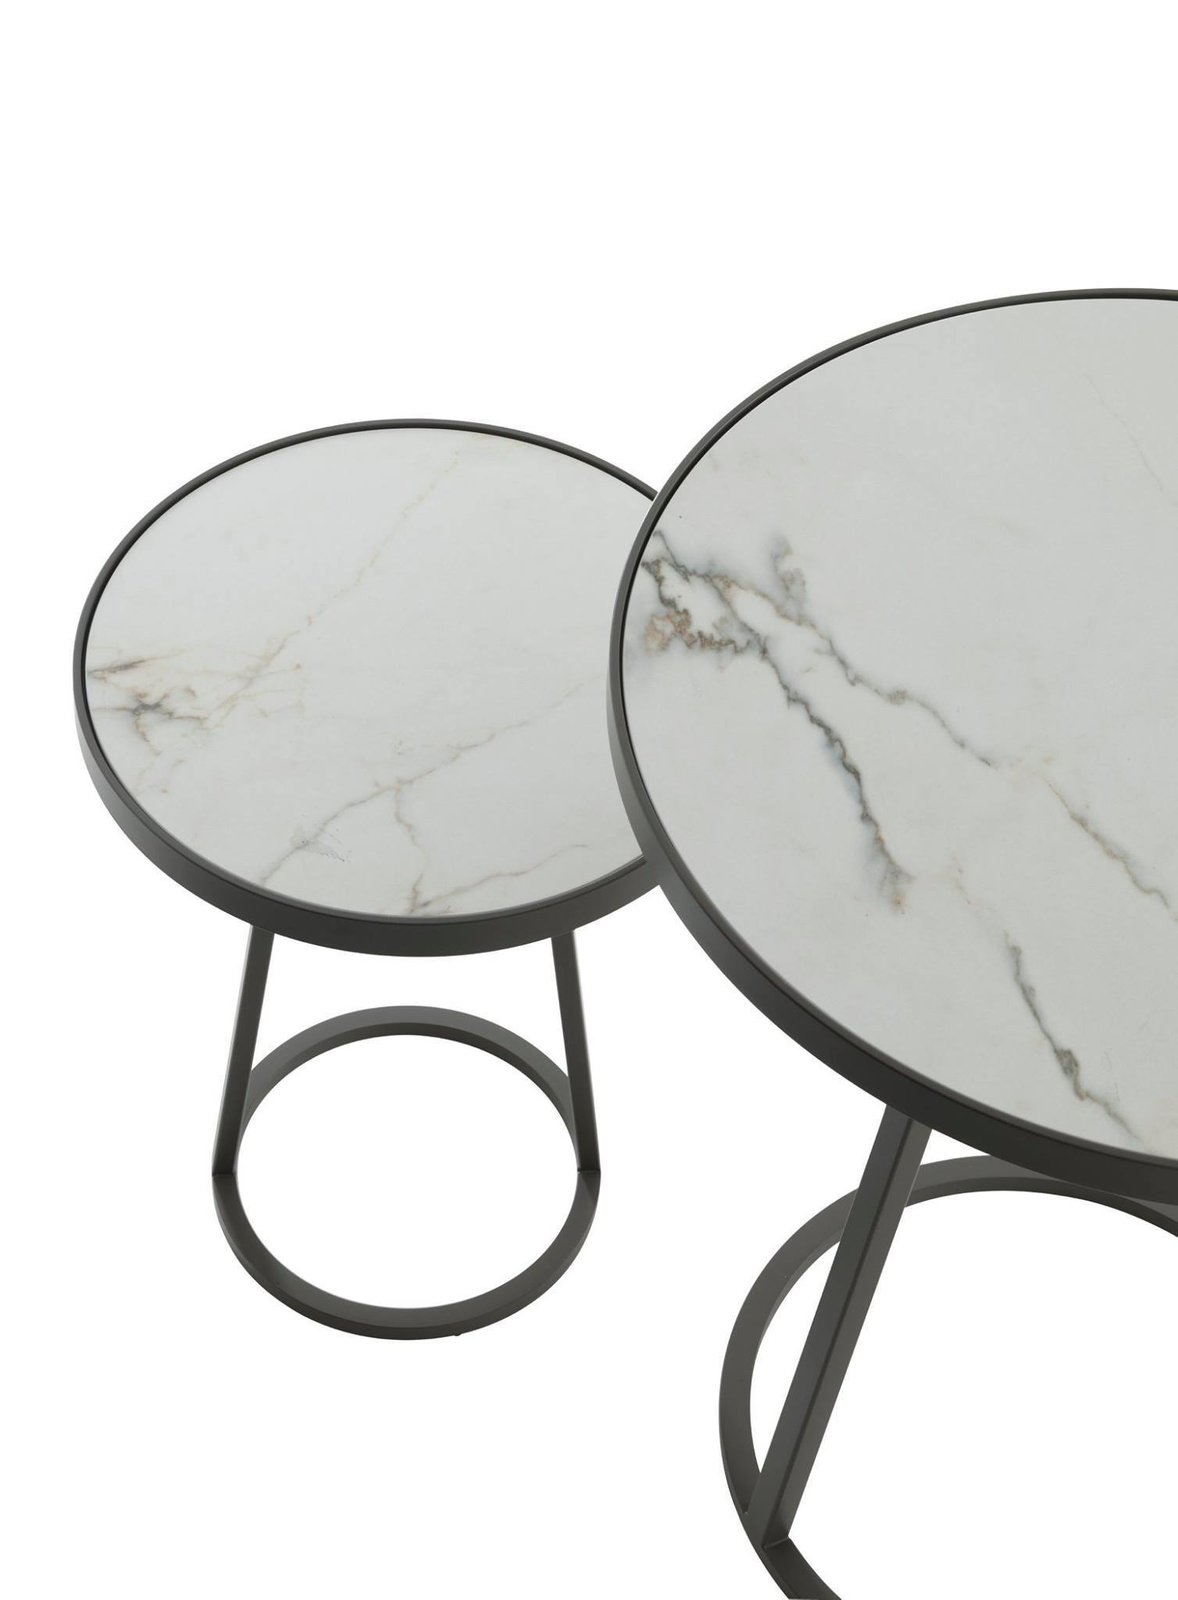 #mariajeglinska #furniture #outdoor #table #sidetable #outside   Circles Outdoor